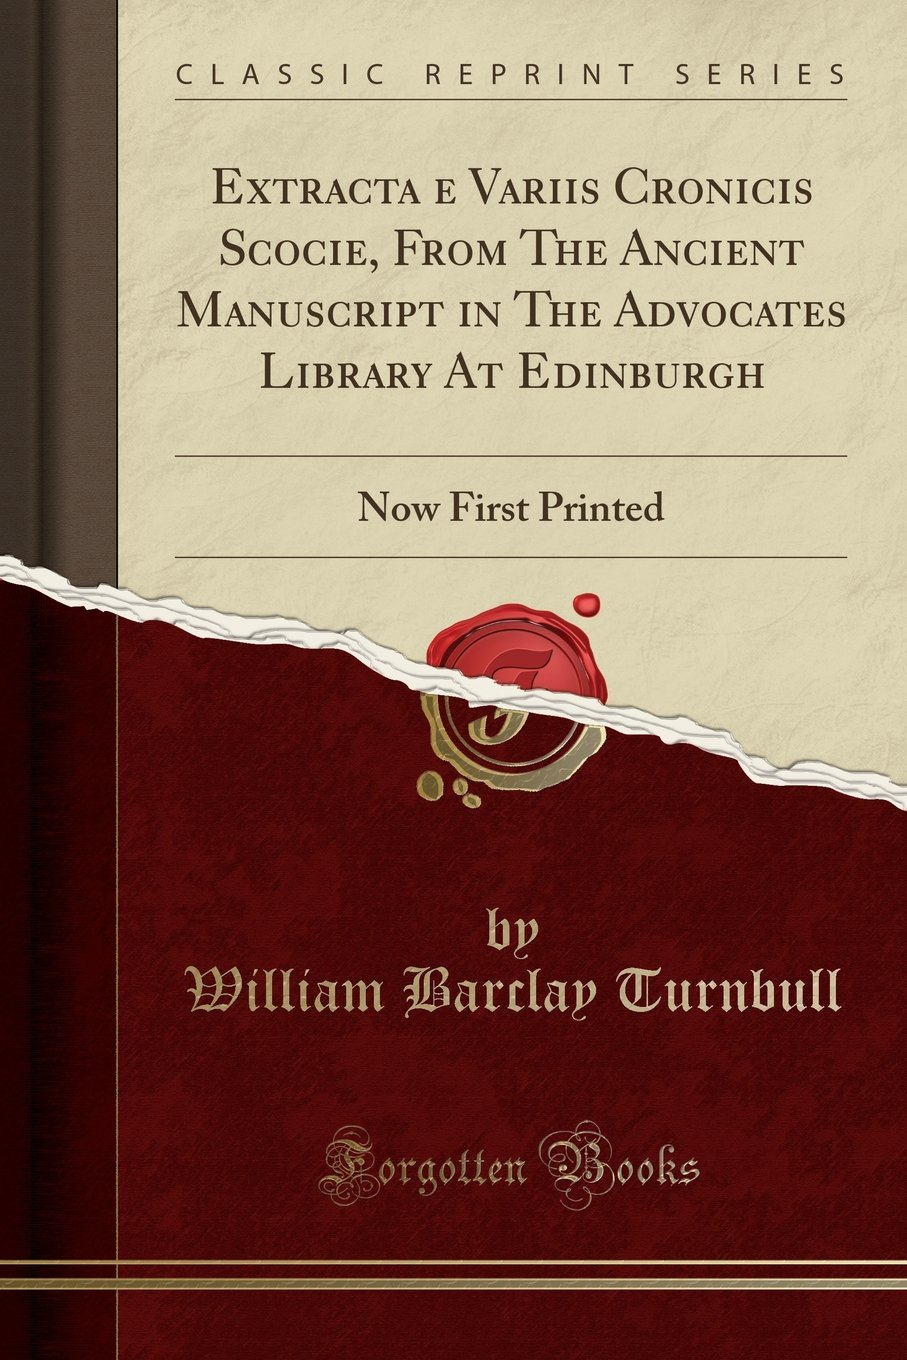 Extracta E Variis Cronicis Scocie, from the Ancient Manuscript in the Advocates Library at Edinburgh: Now First Printed (Classic Reprint) (Latin Edition) ebook